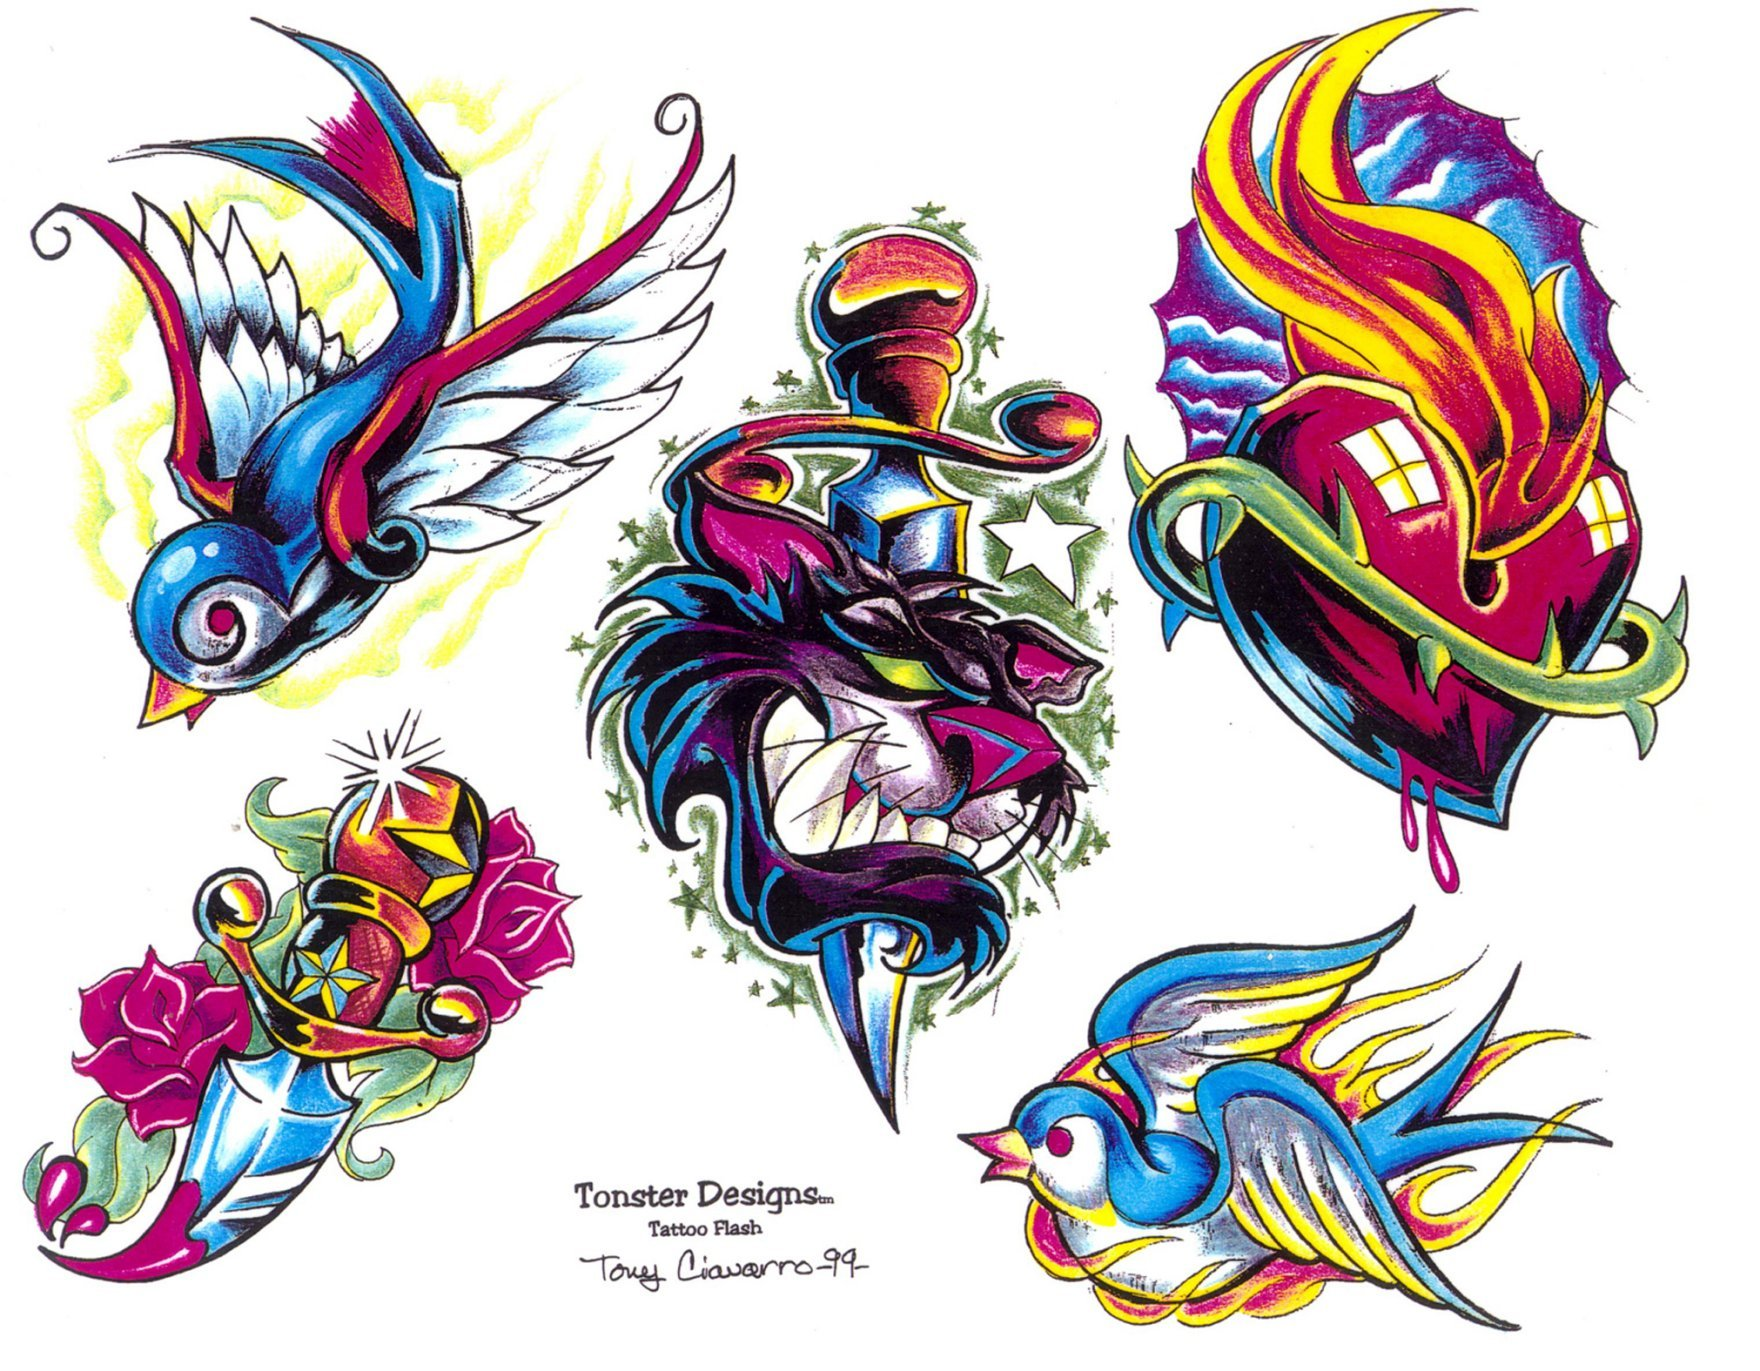 Tattoo Flash paintings